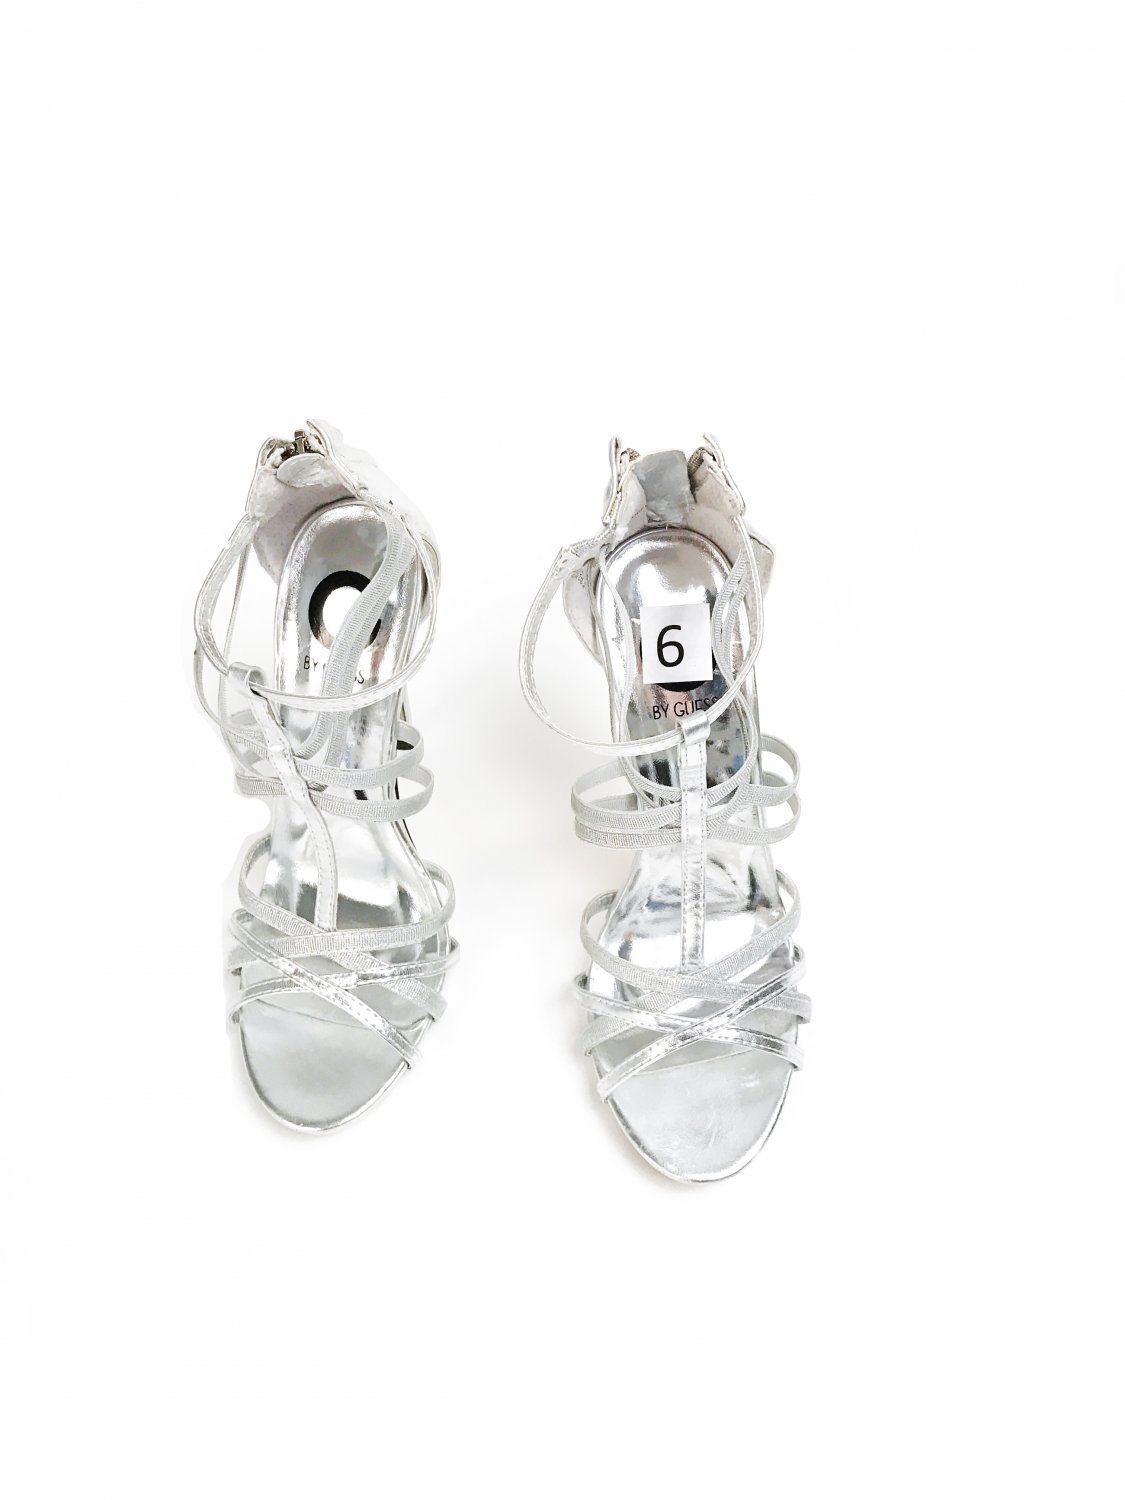 Guess shoes high heels silver sandals.